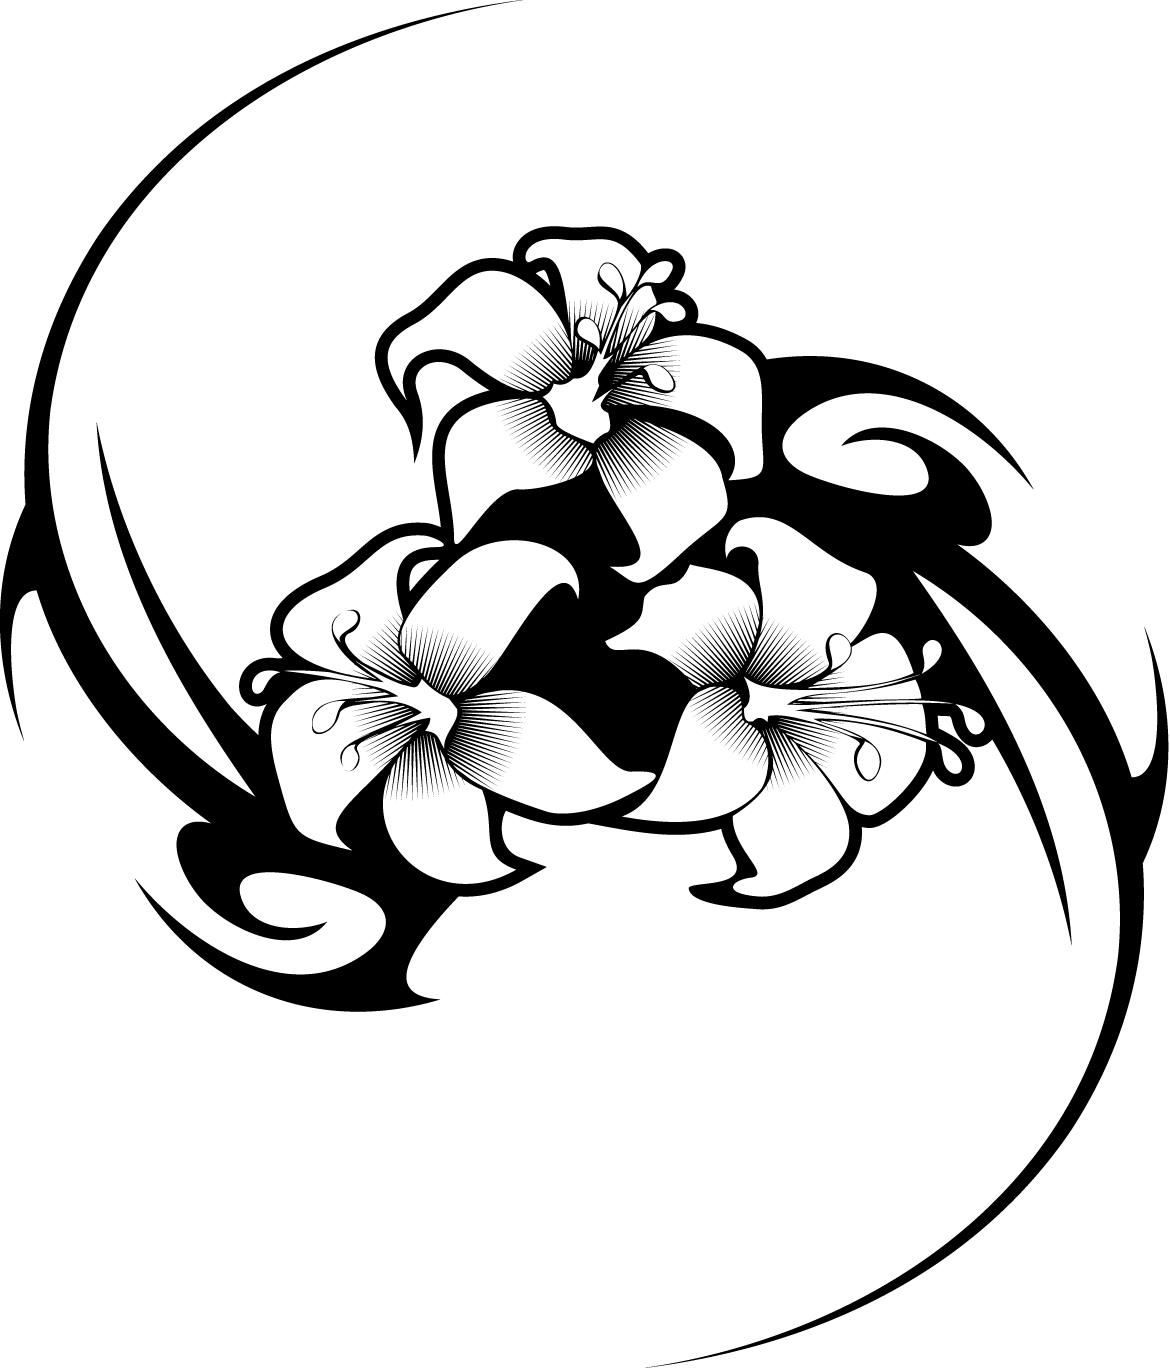 Drawn hibiscus long flower  tattoo coloring Pages state